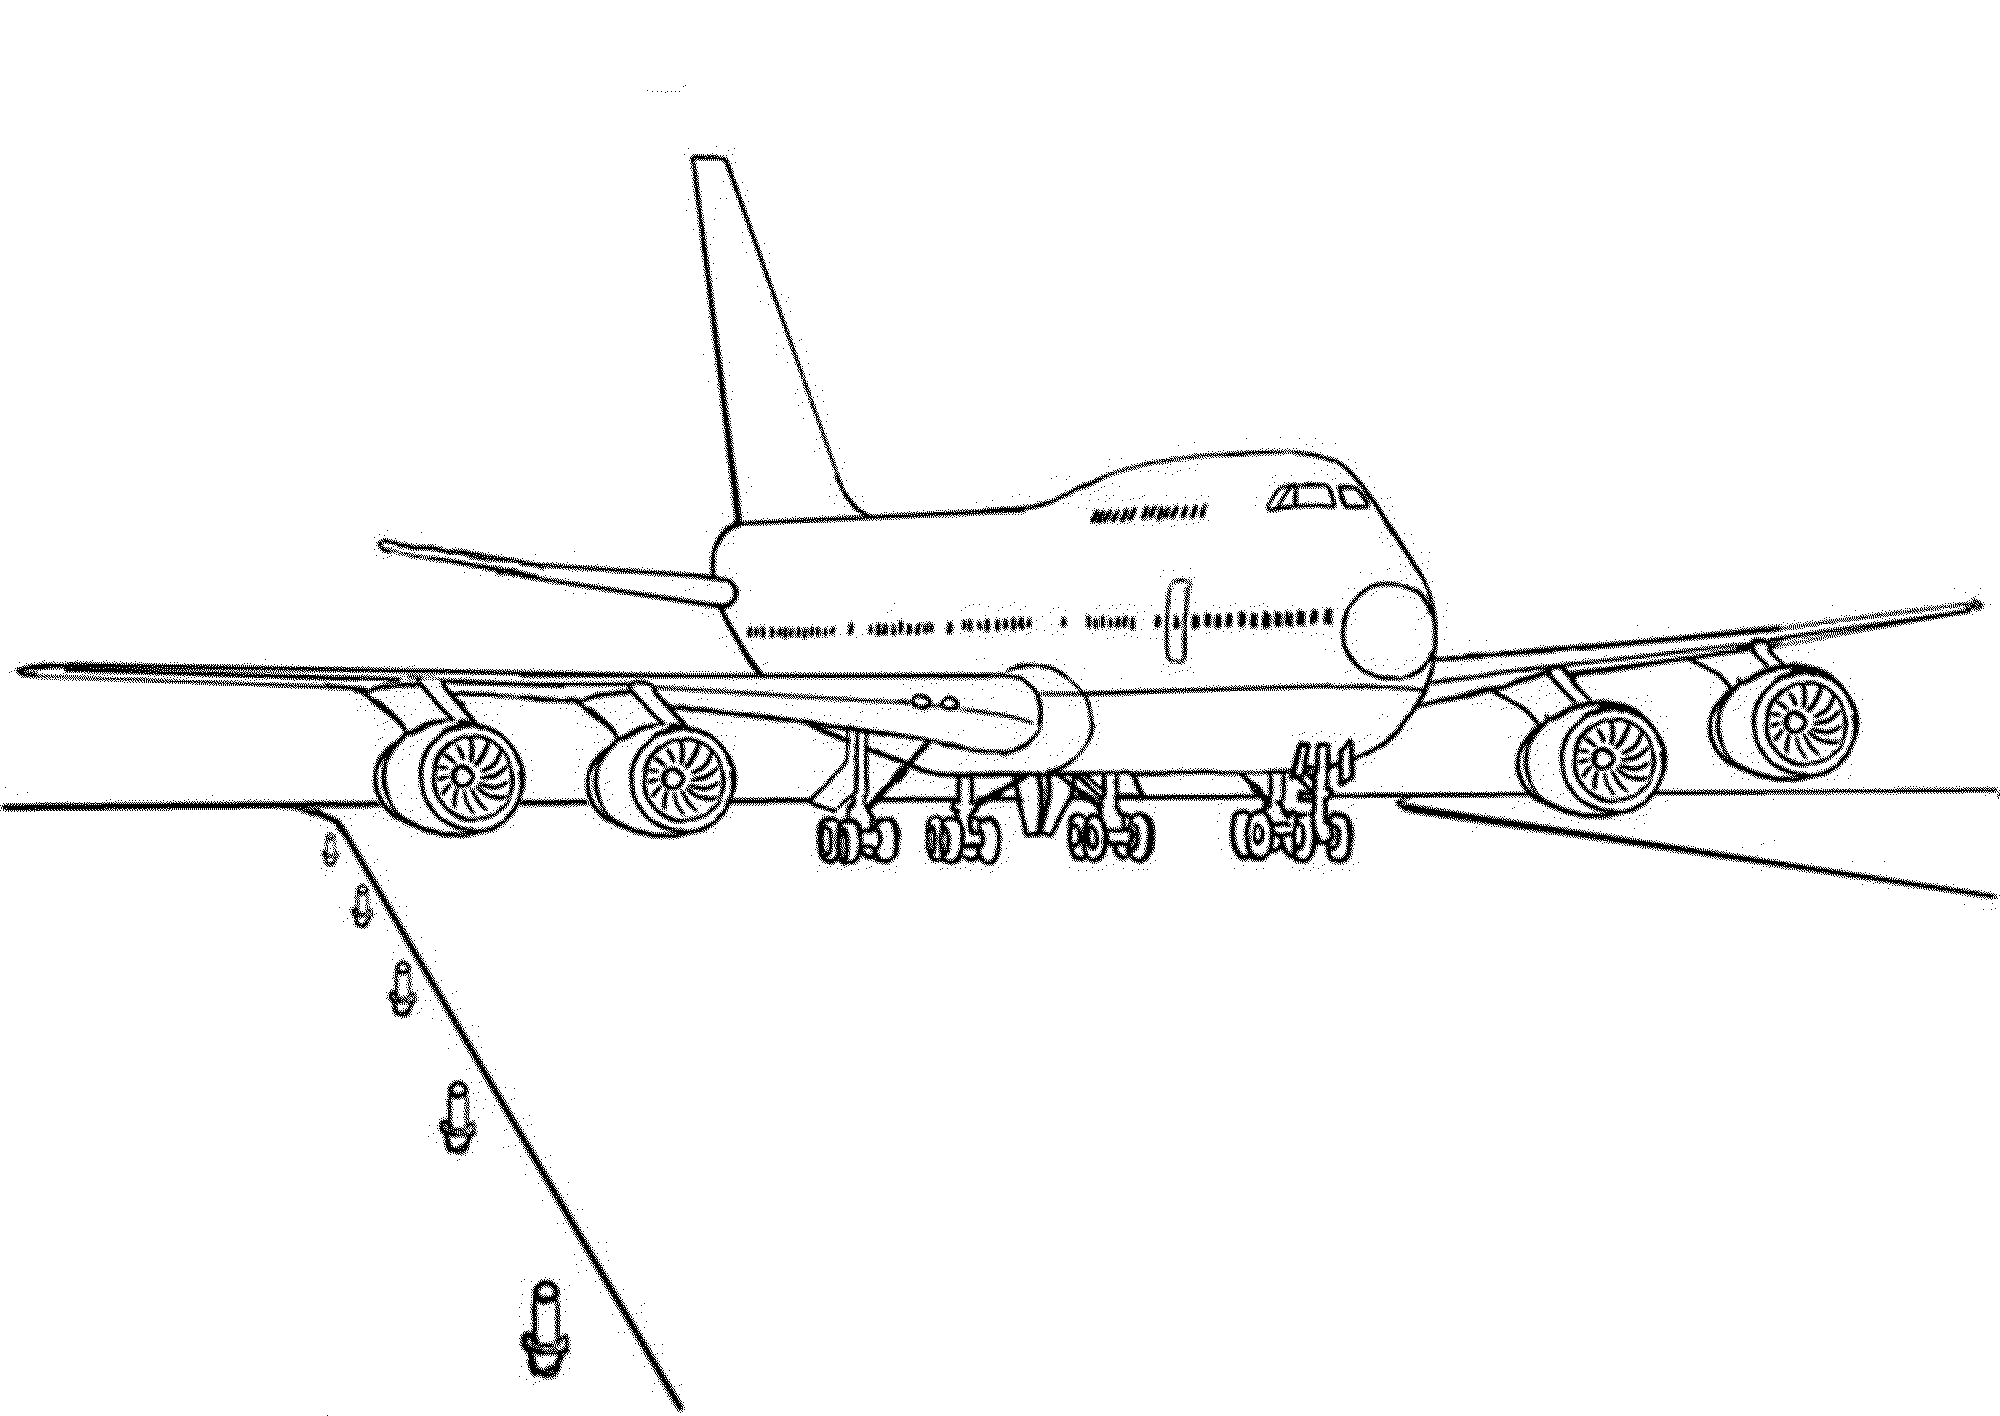 Boing 747 landing coloring page airplane coloring pages educational apps for kids planes